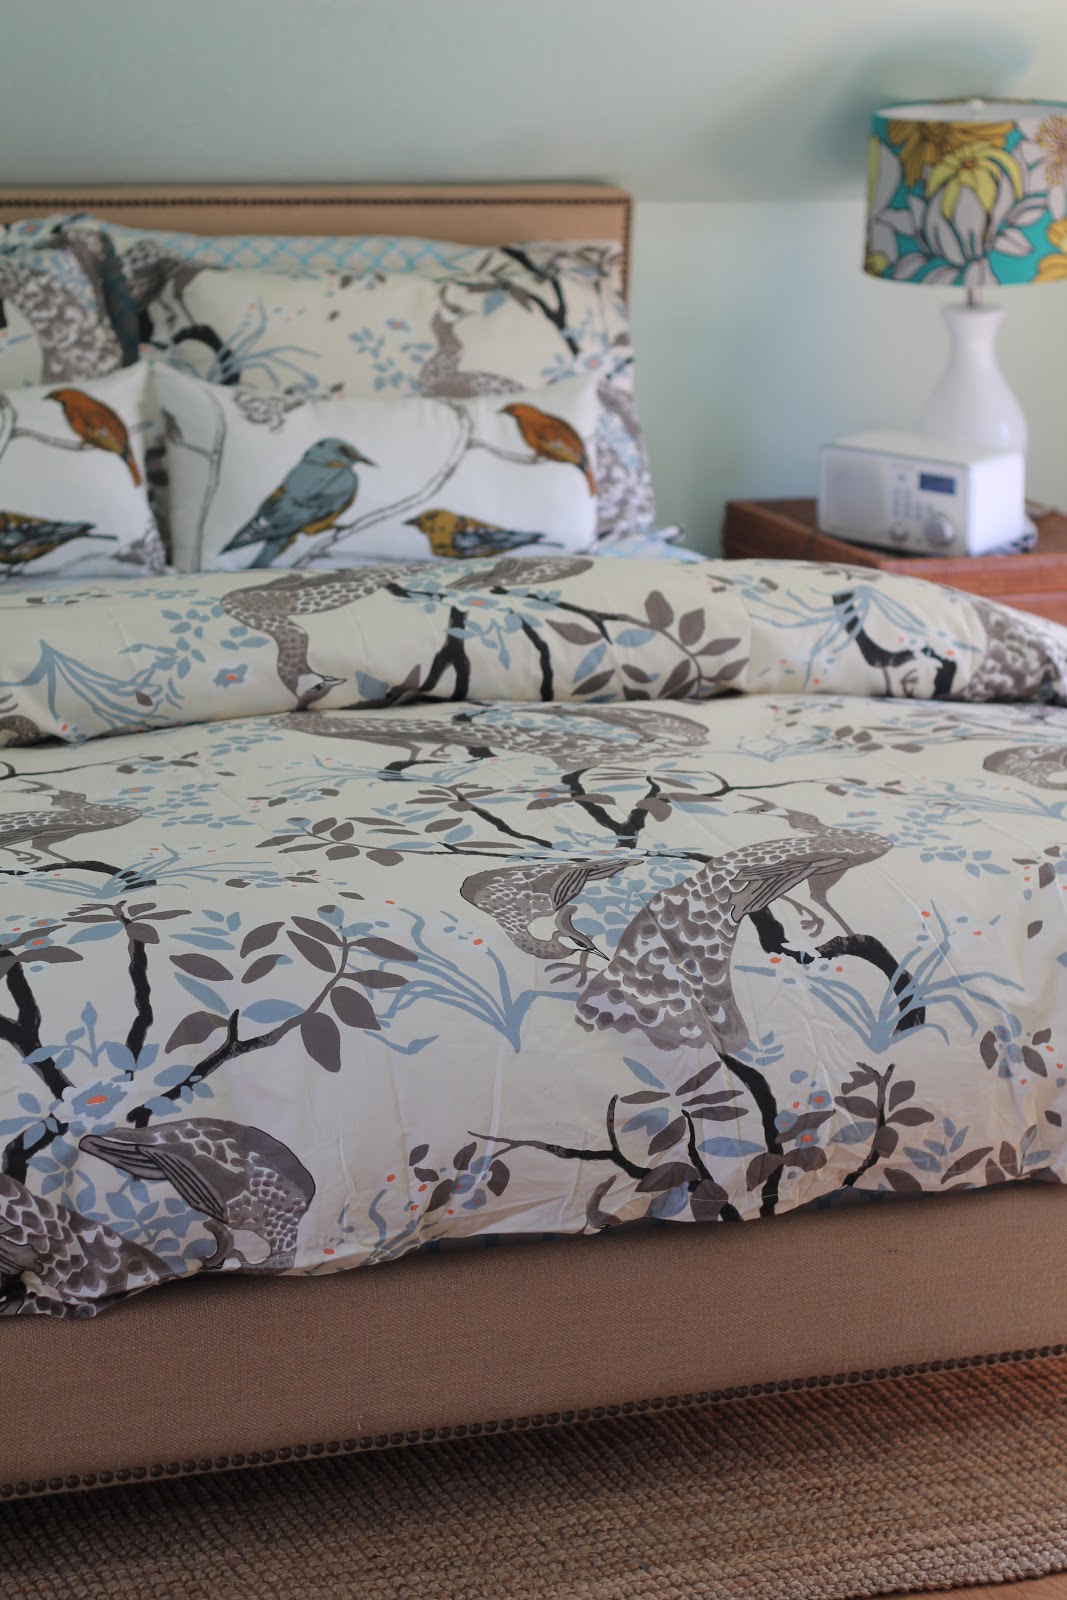 Peacock Bedding | Peacock Alley Duvet Covers | Peacock Baby Bedding Sets